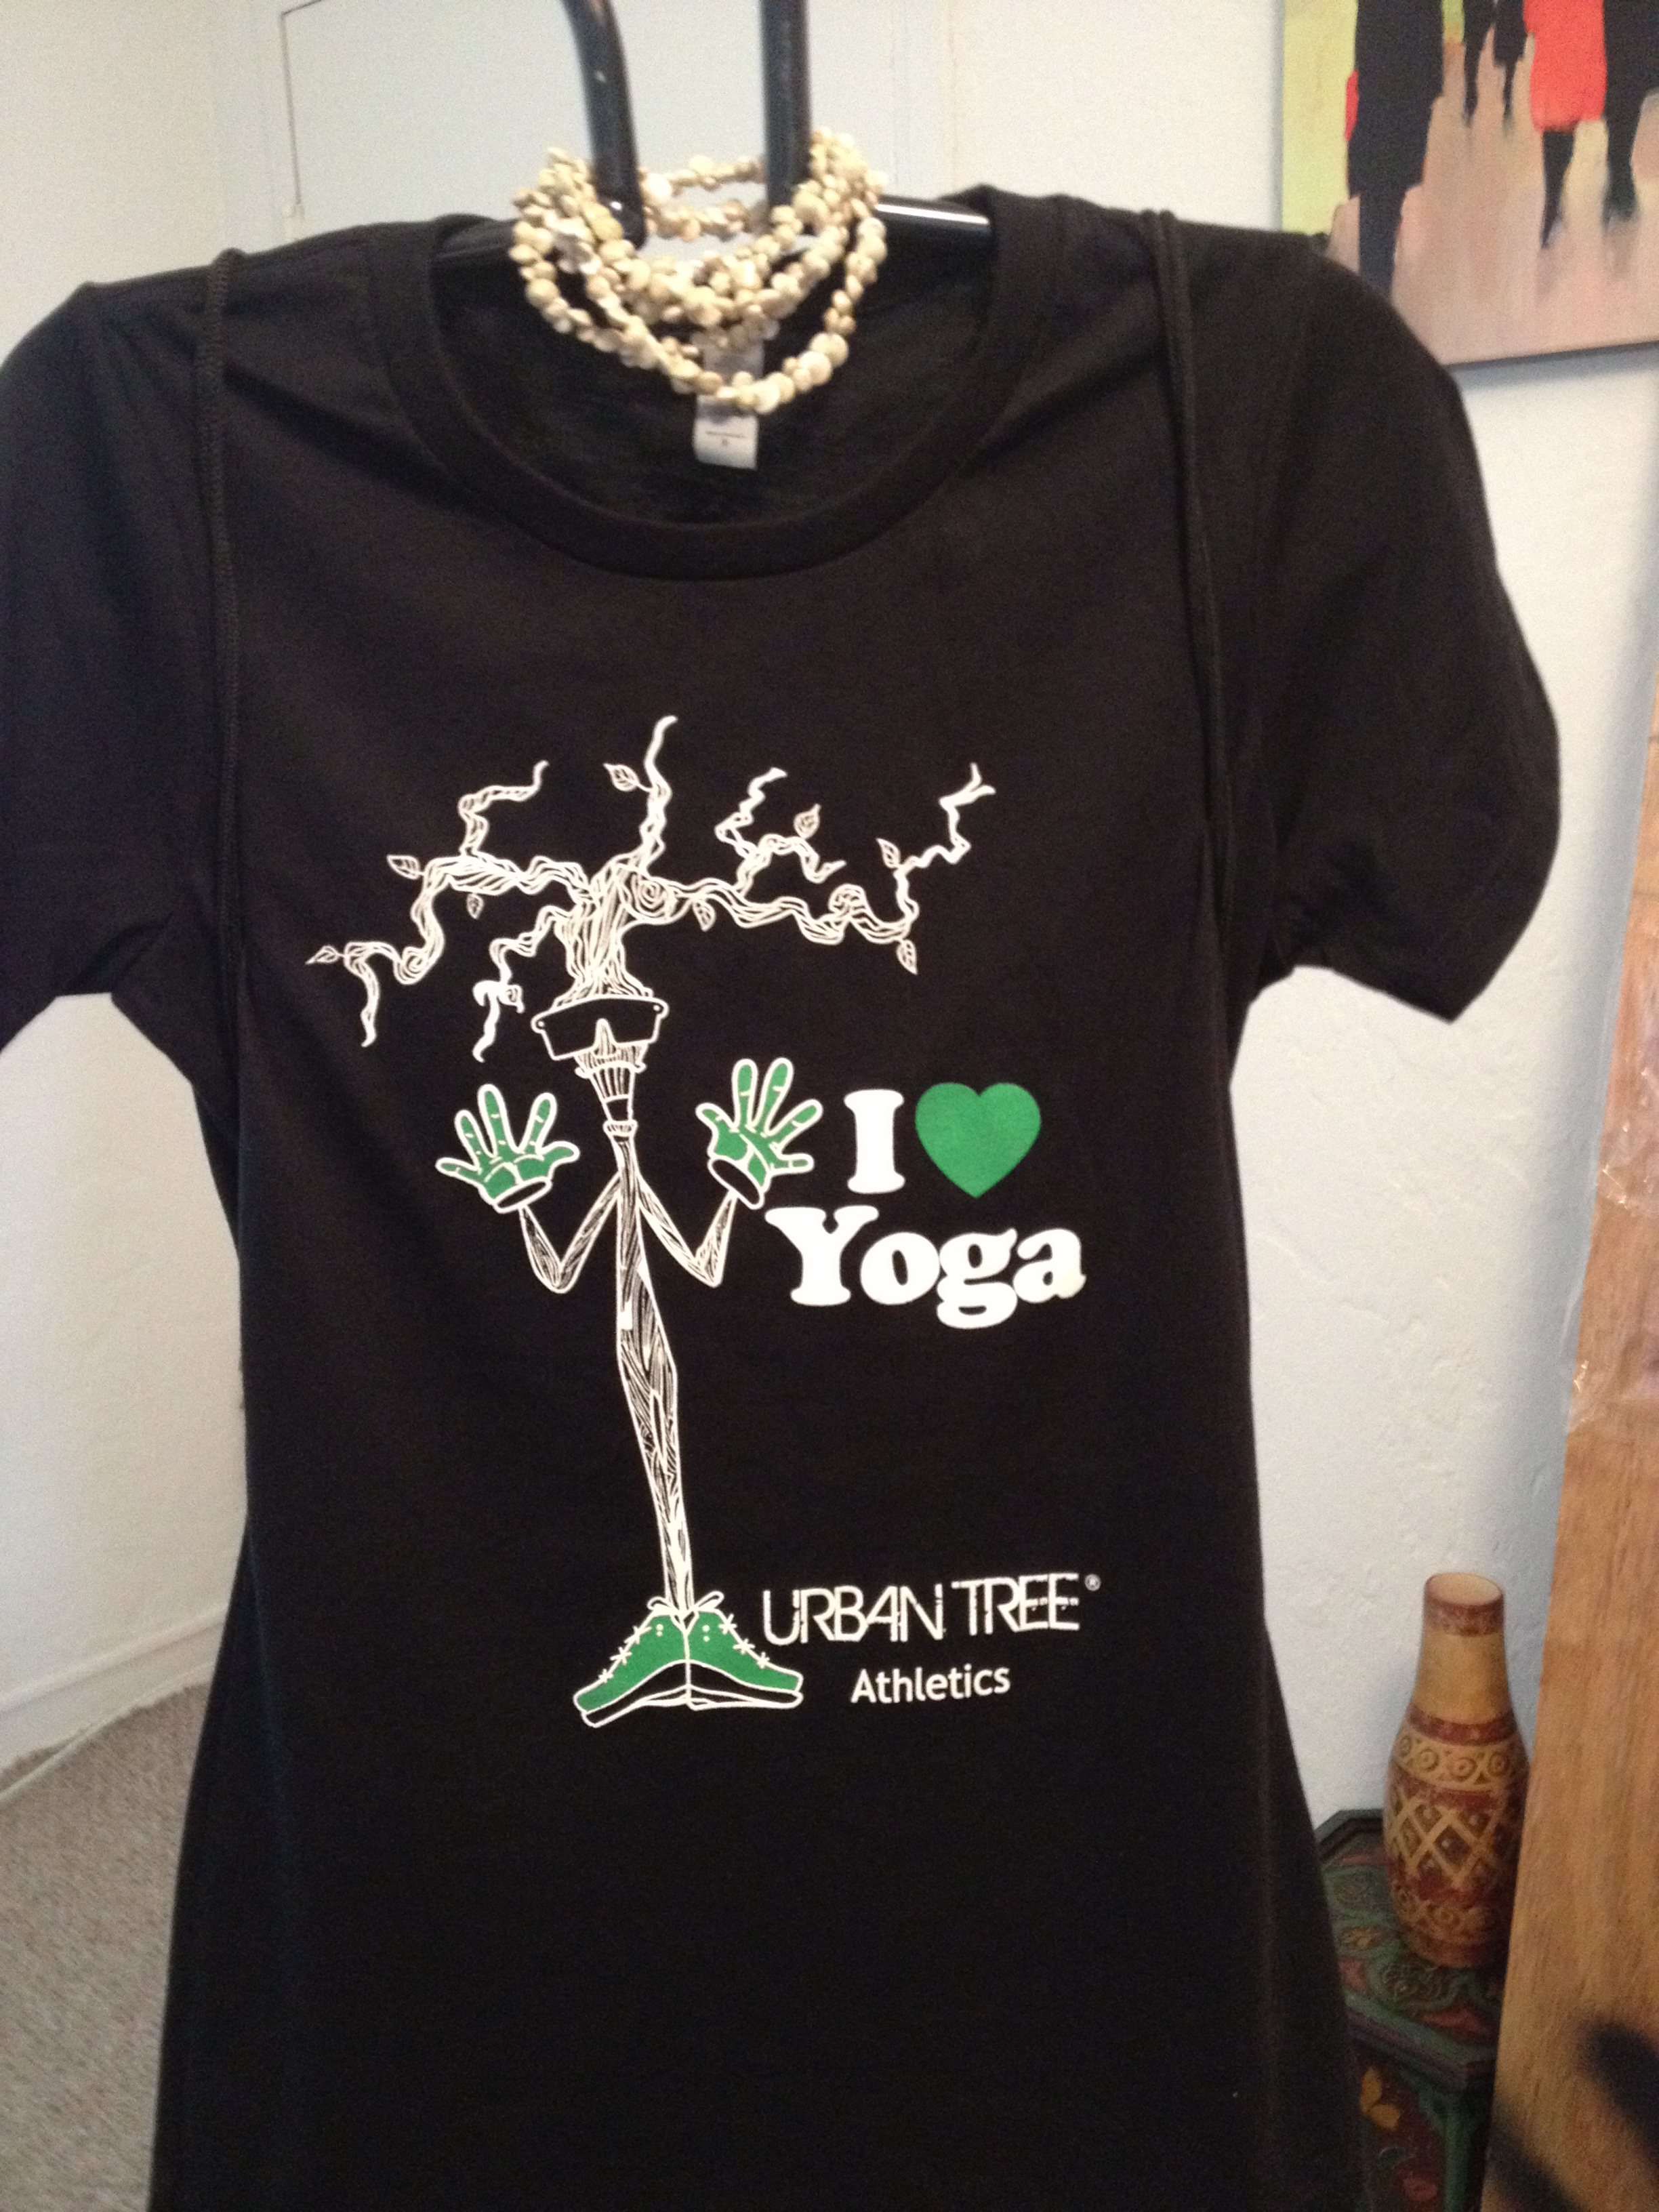 Urban Tree Outfitters I Love Yoga T Shirt Sold By Urbntre Com On Storenvy